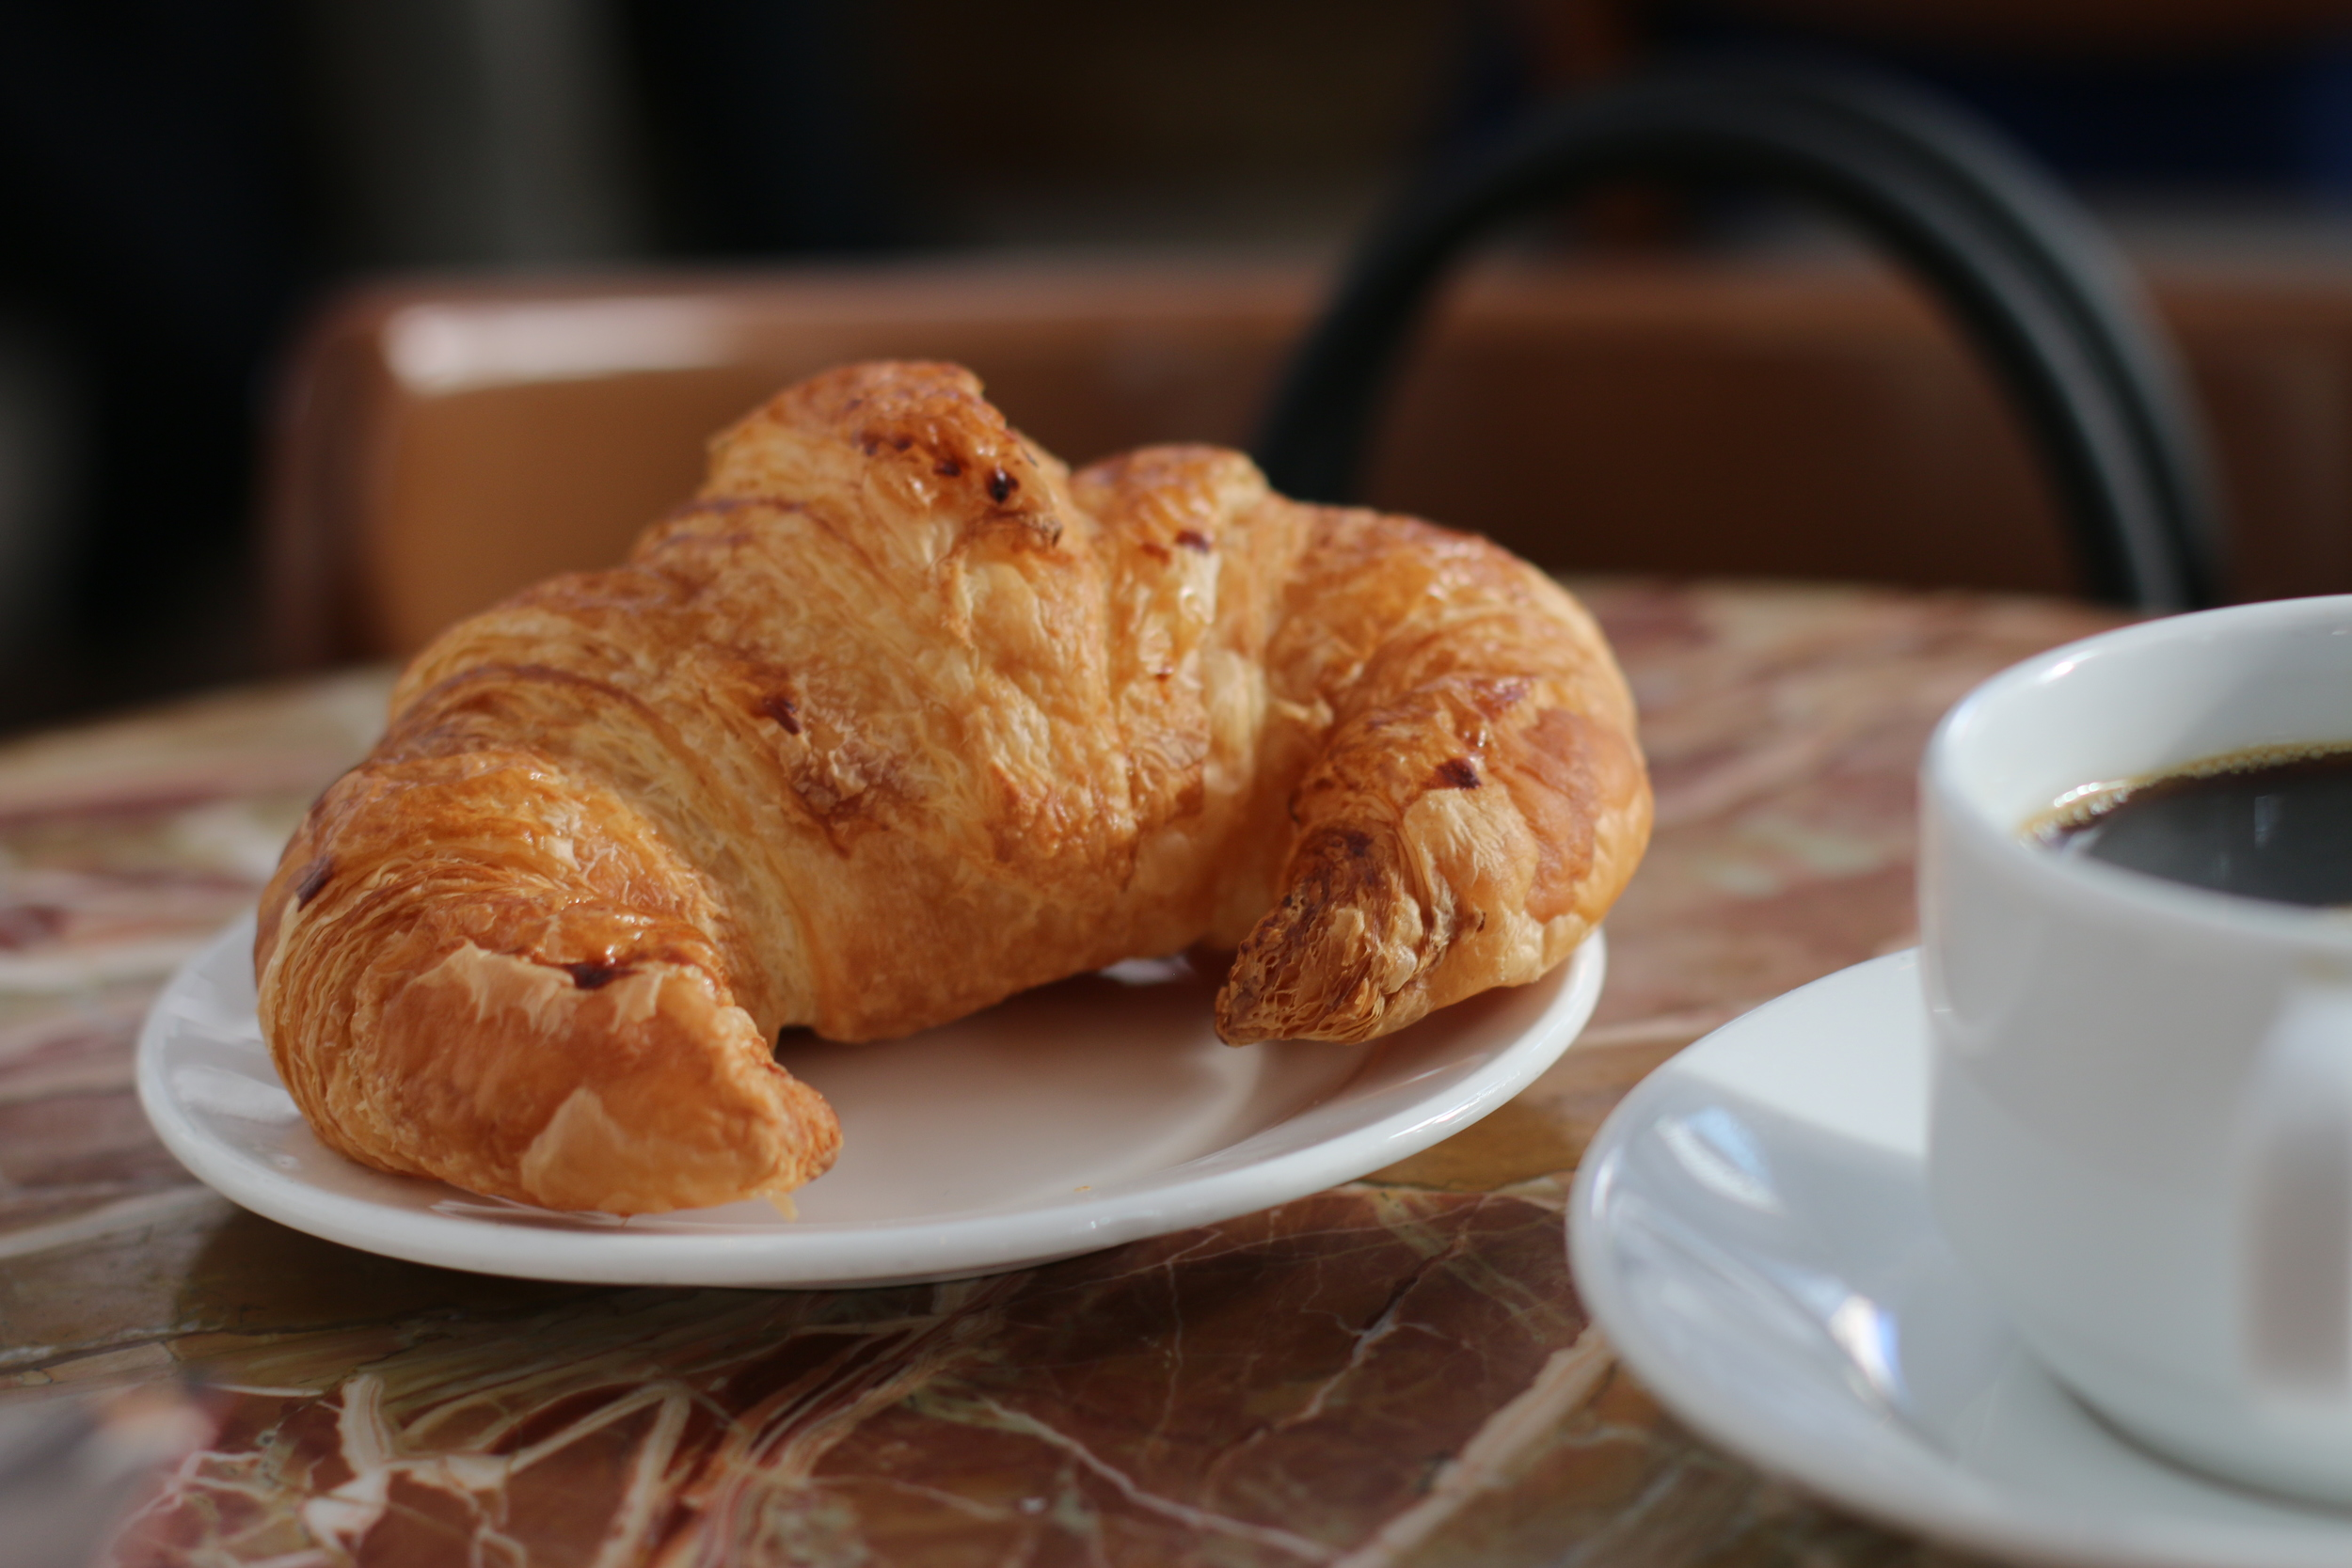 Getting croissant crumbs in between all the pages of your book? Worth it.